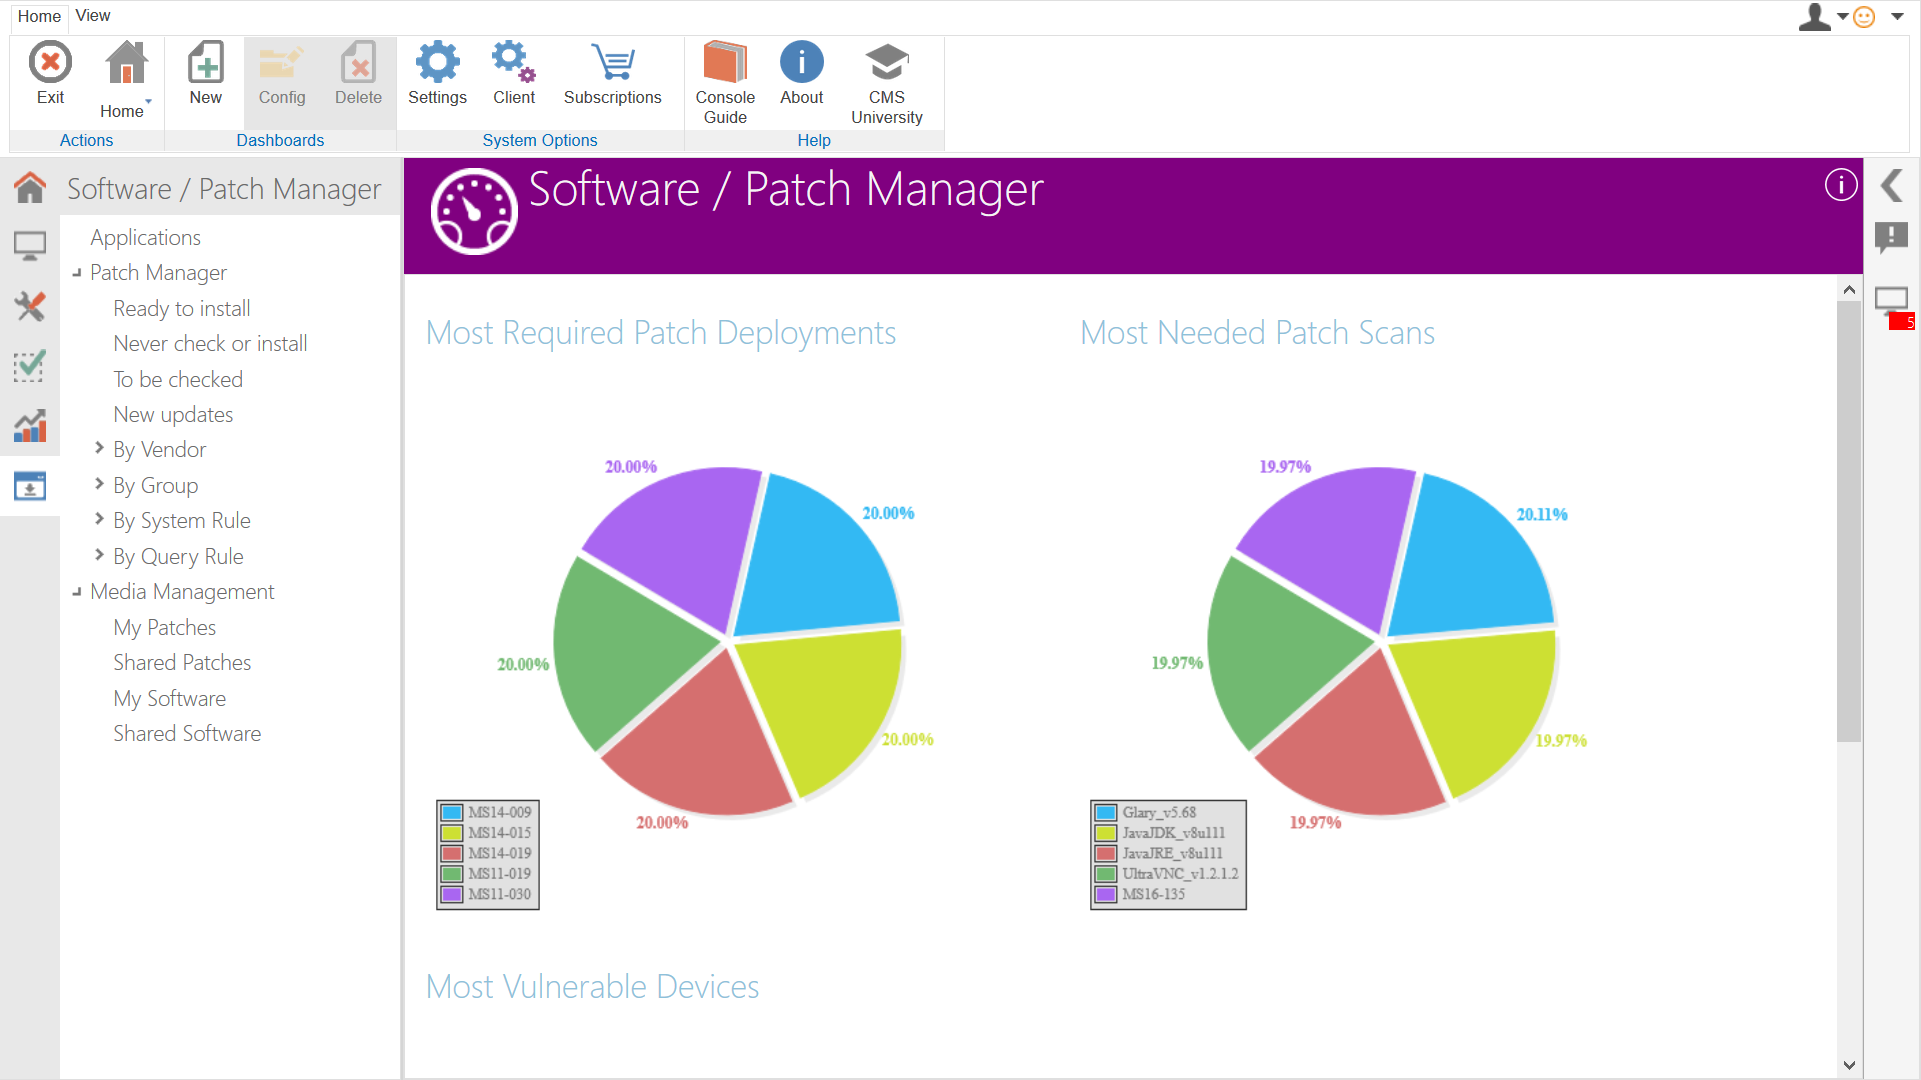 Cloud Management Suite Demo - Patch Management - Most Vulnerable Devices, Required Critical Patches, Patch Scans